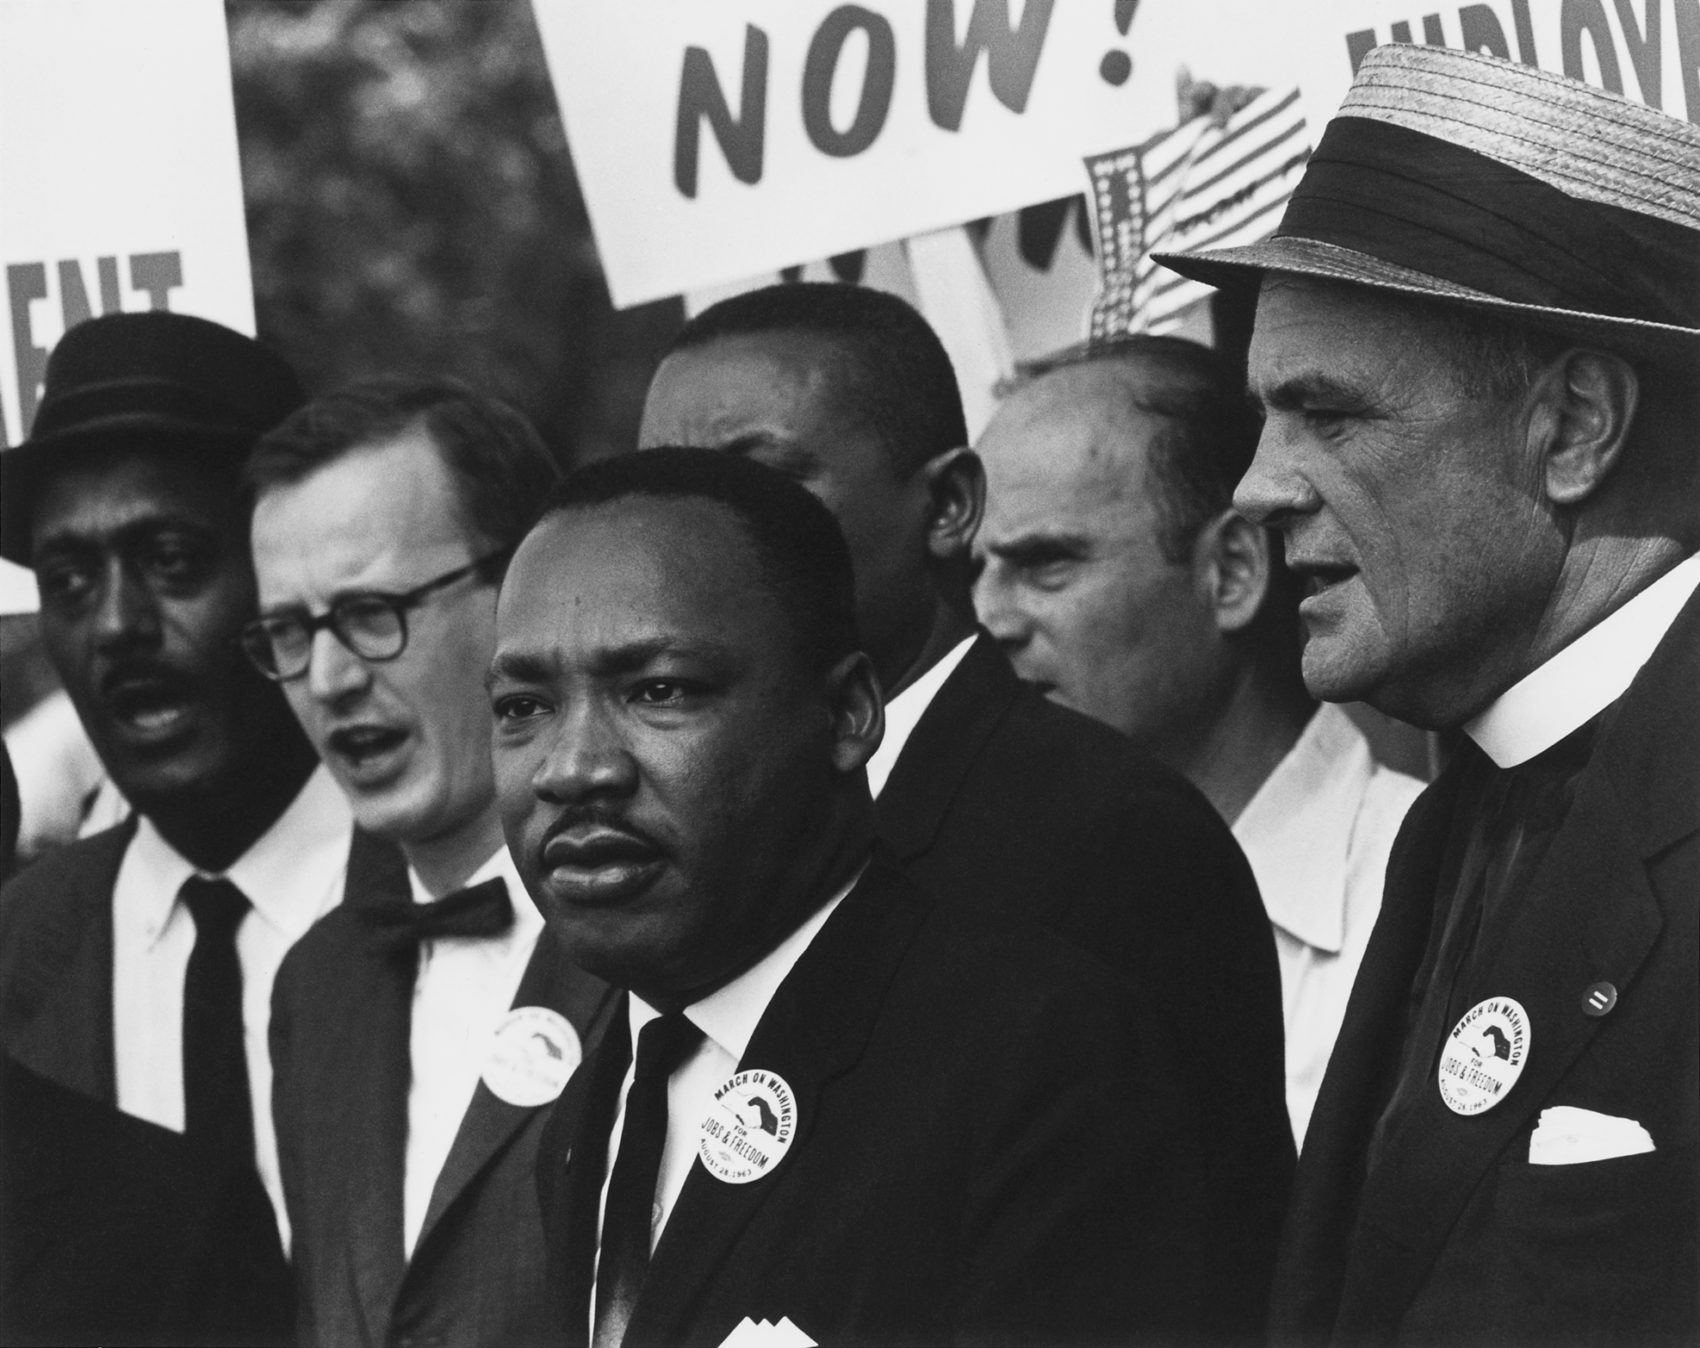 Martin Luther King III: 'We Must Be a Living Movement Not a Monument'